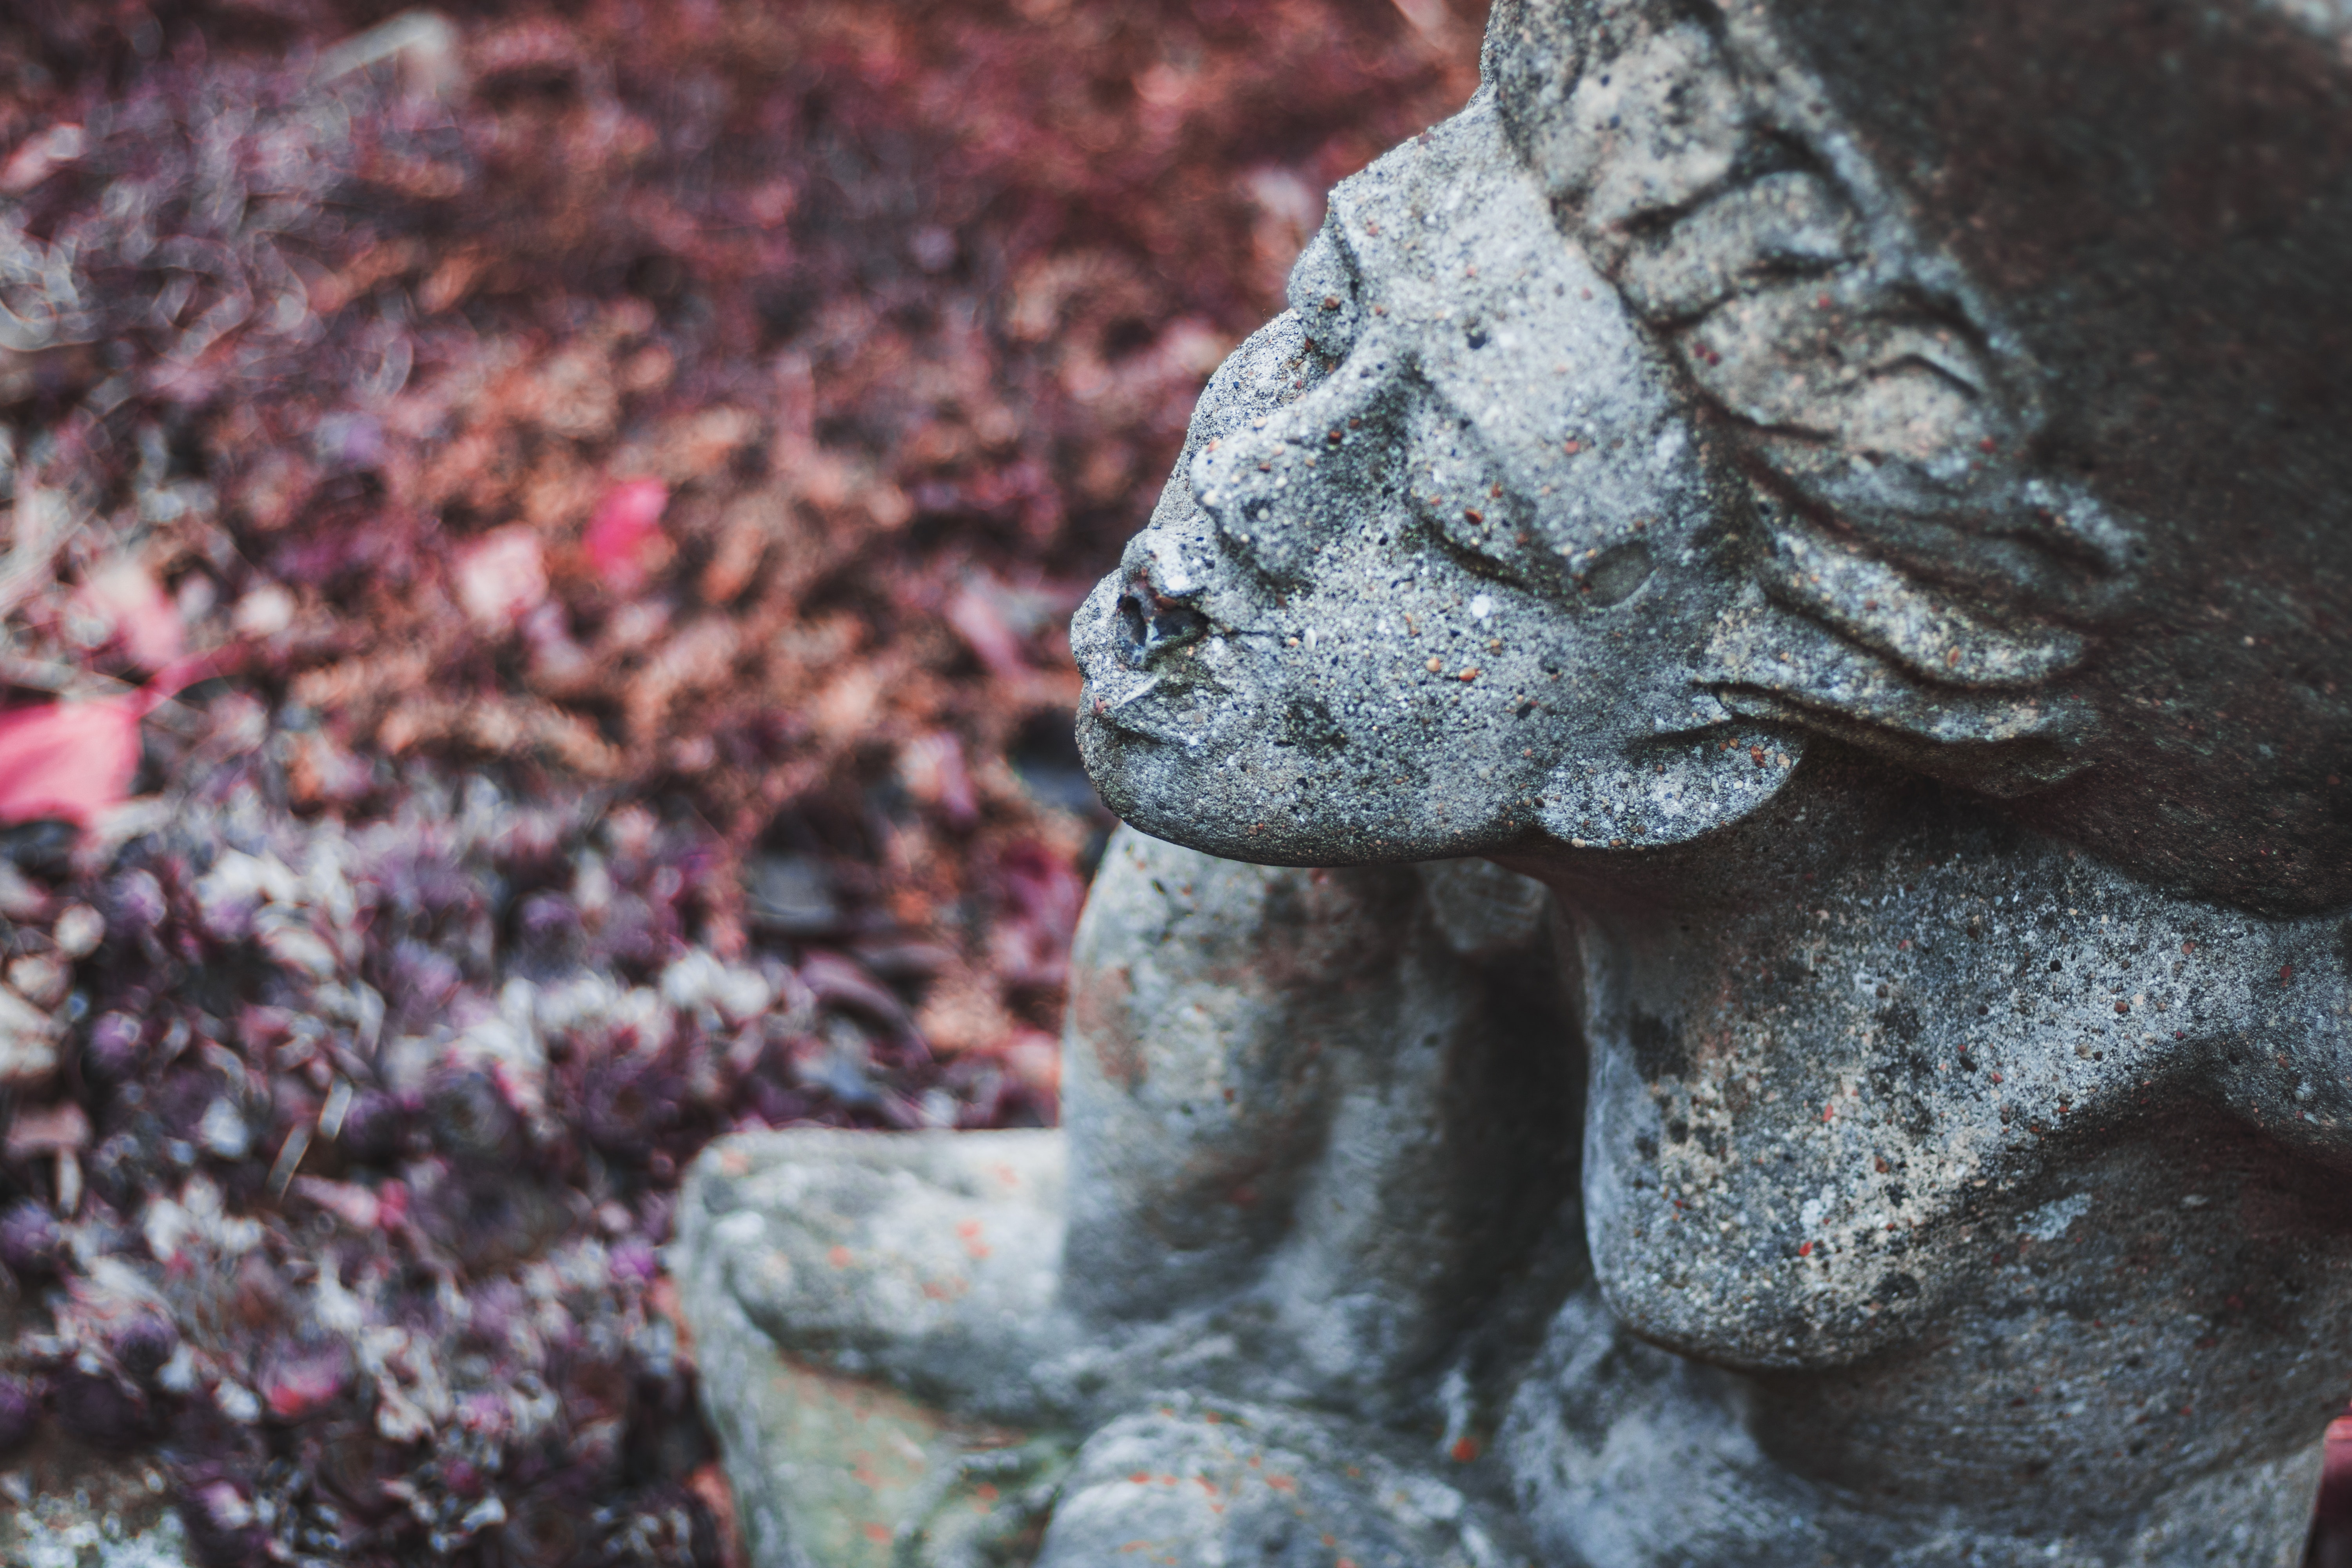 Close-up of Statue, Outdoors, Texture, Stone, Statue, HQ Photo